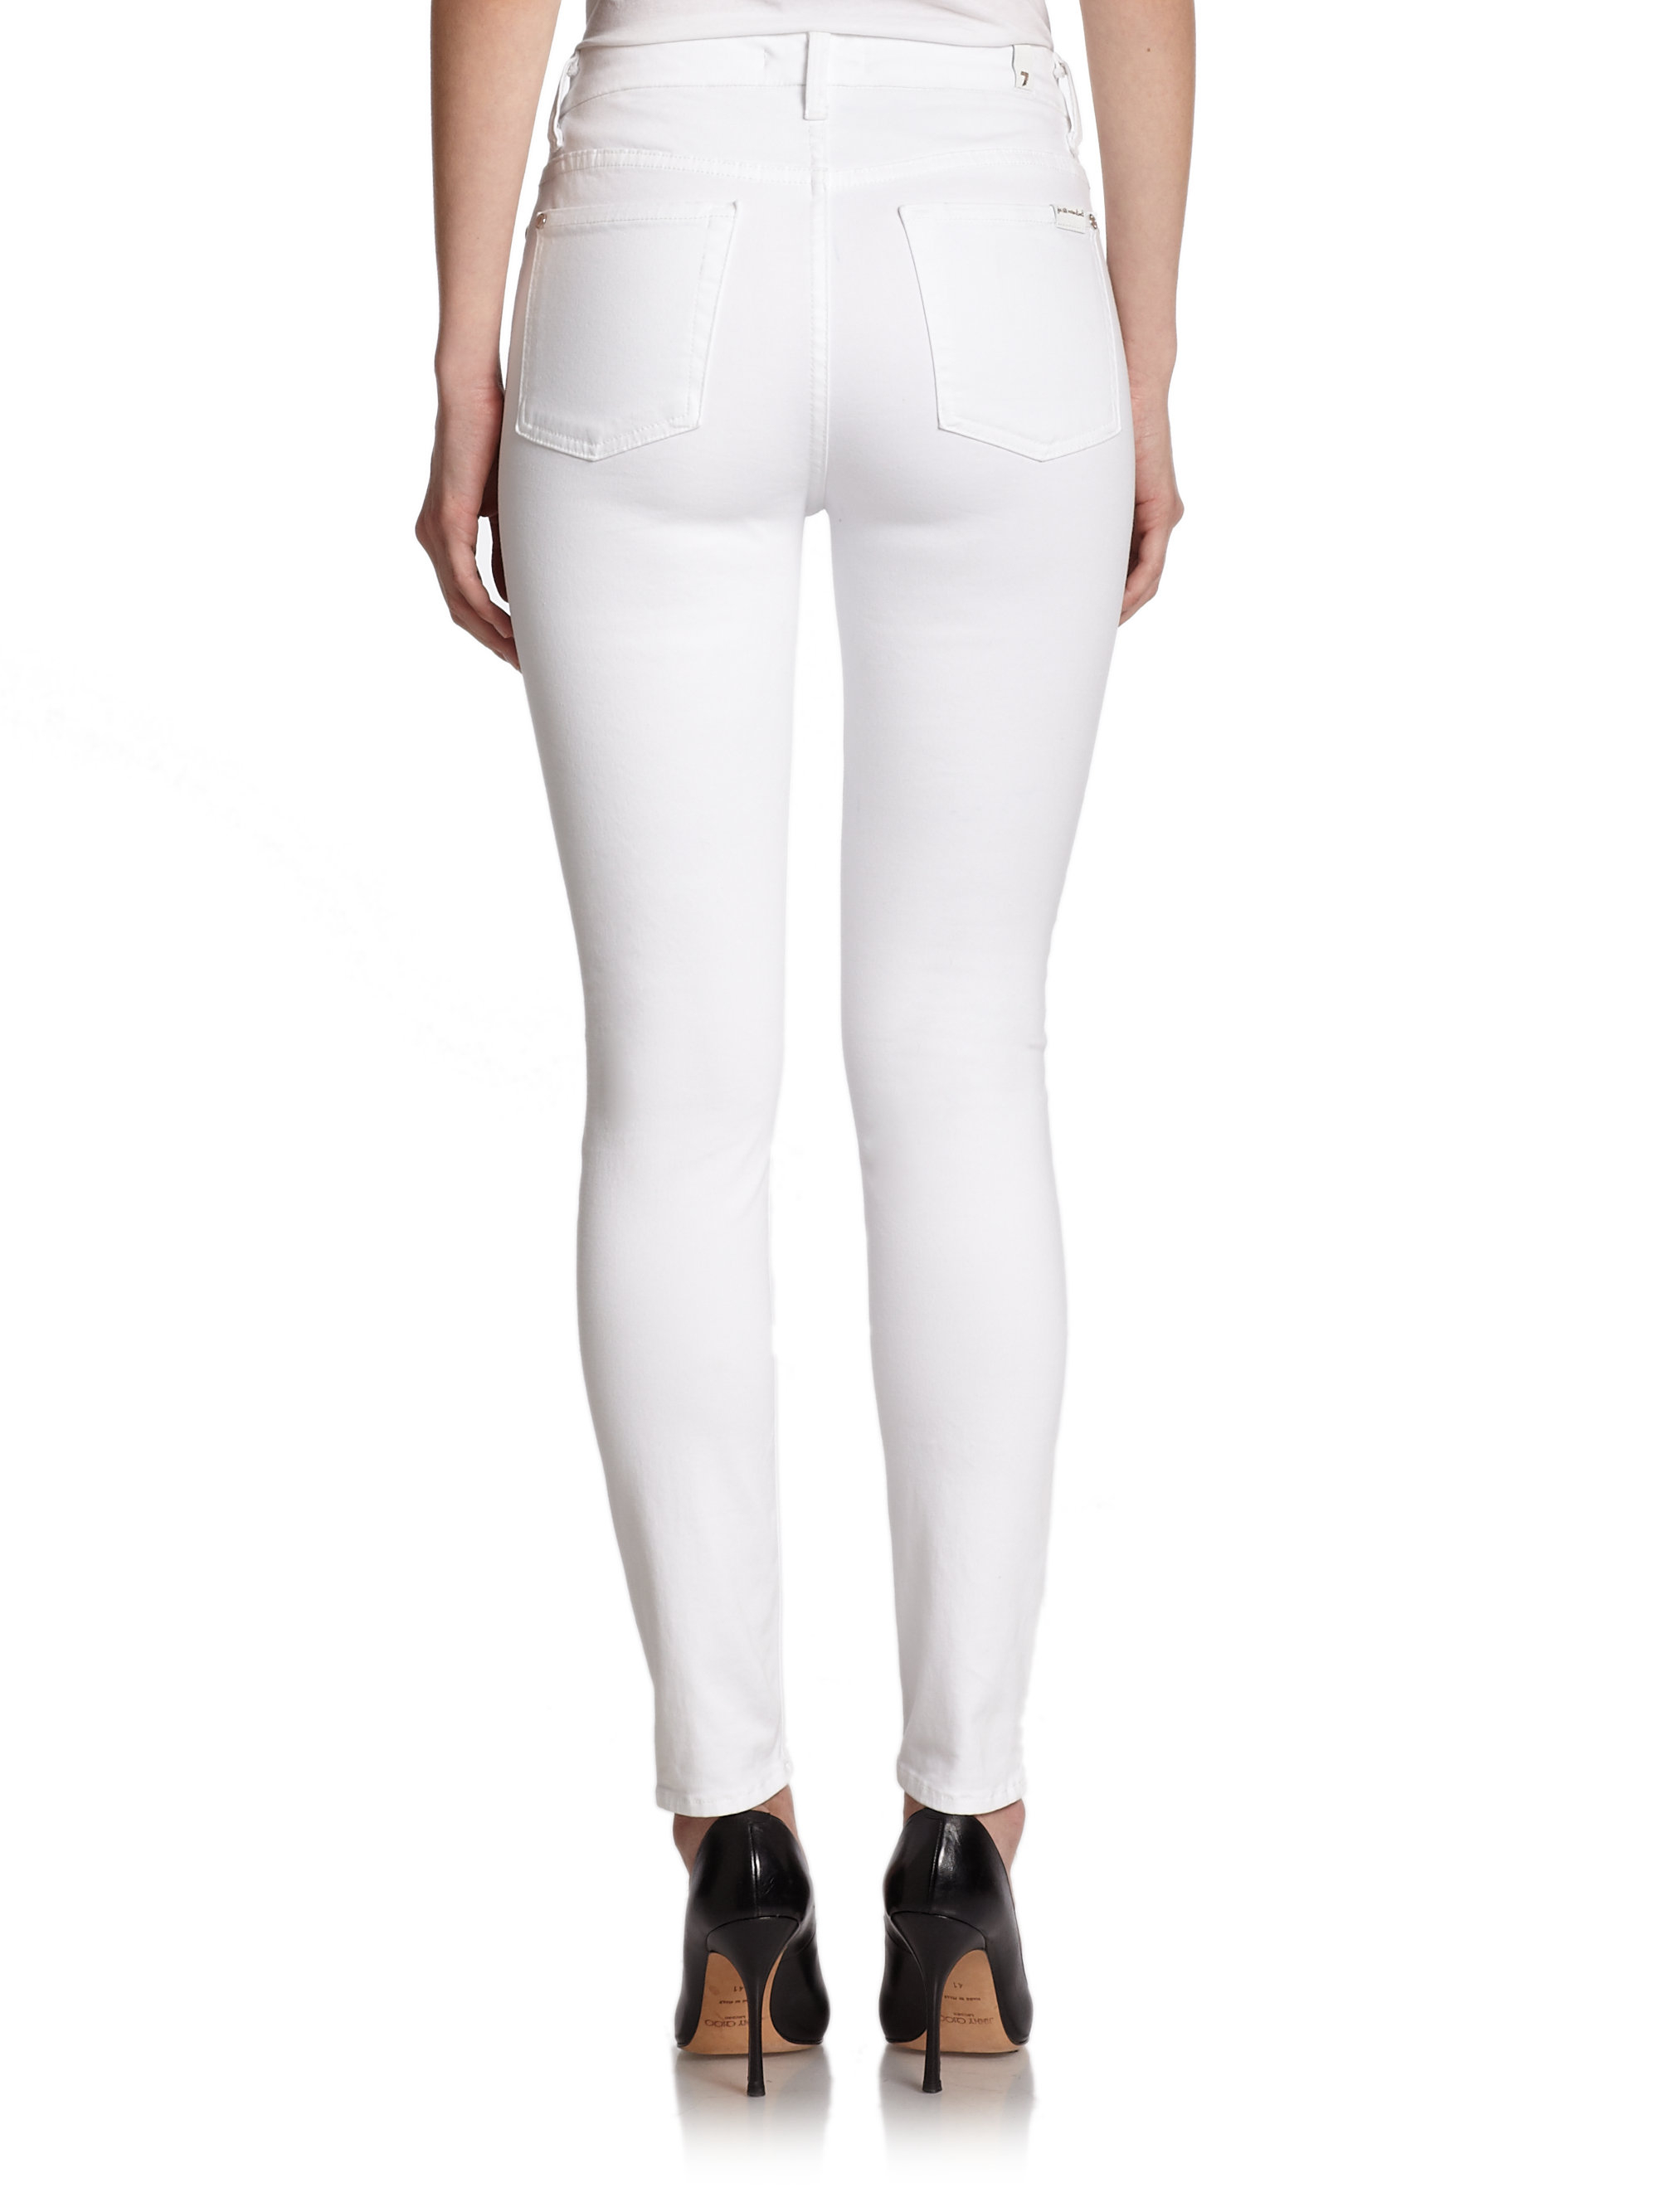 All White High Waisted Jeans - Is Jeans